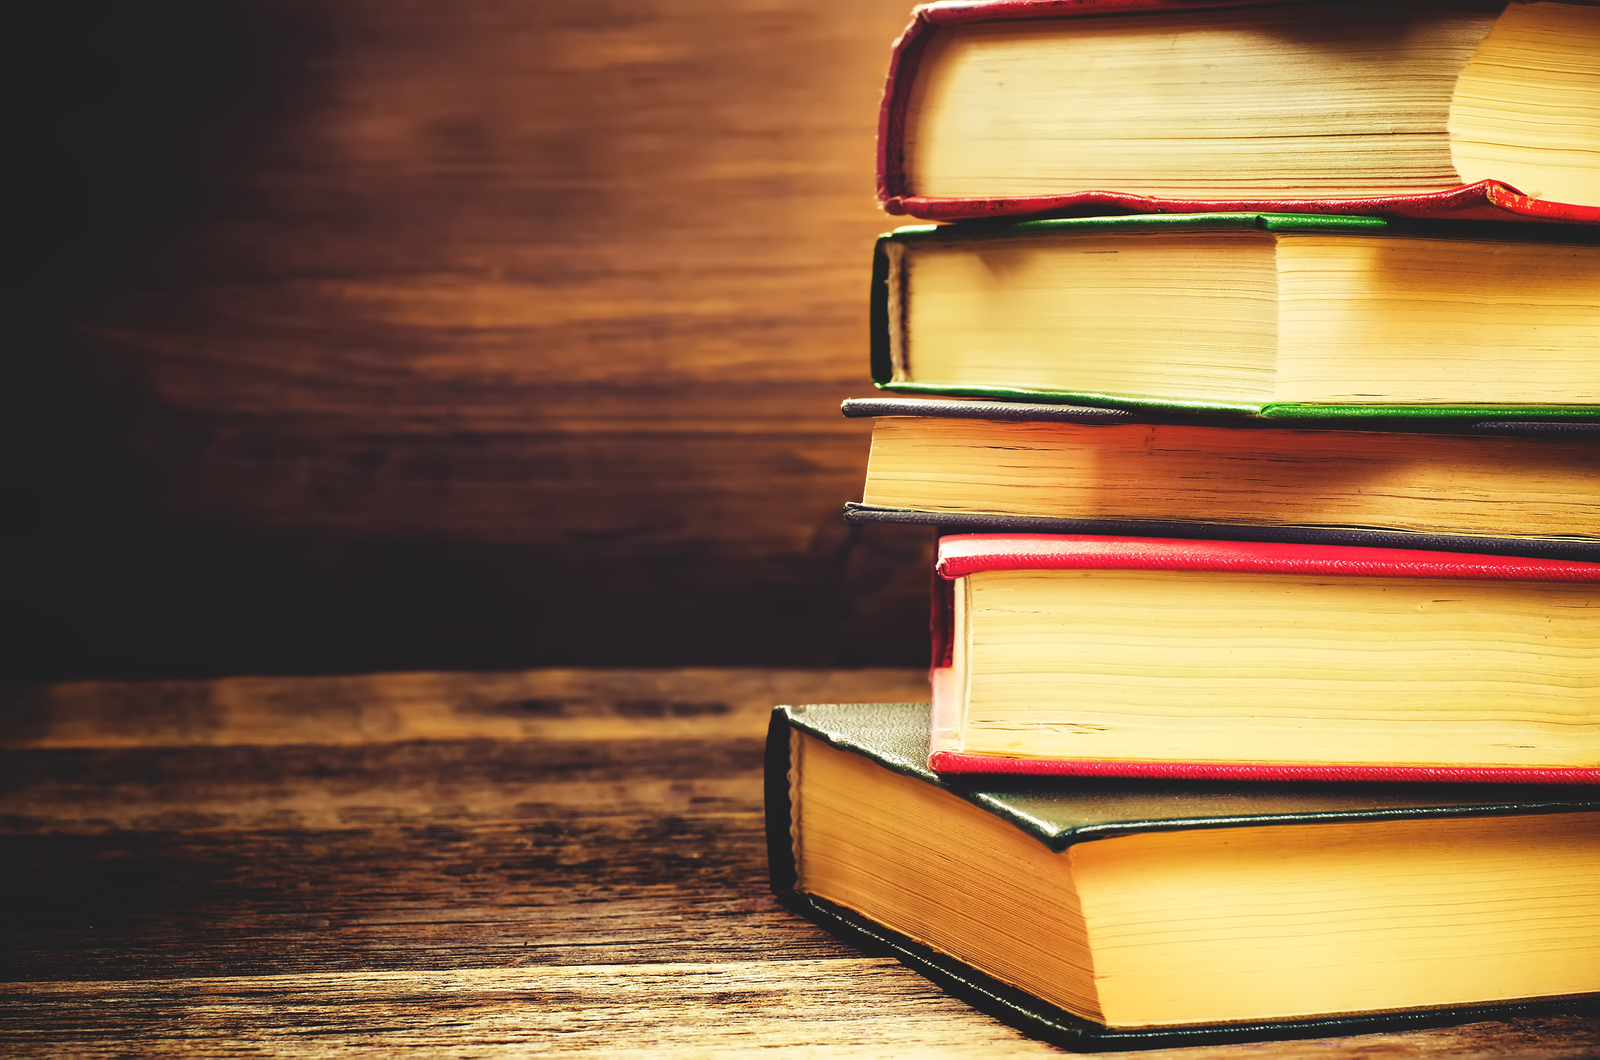 Shagun: What Have Books Taught You?